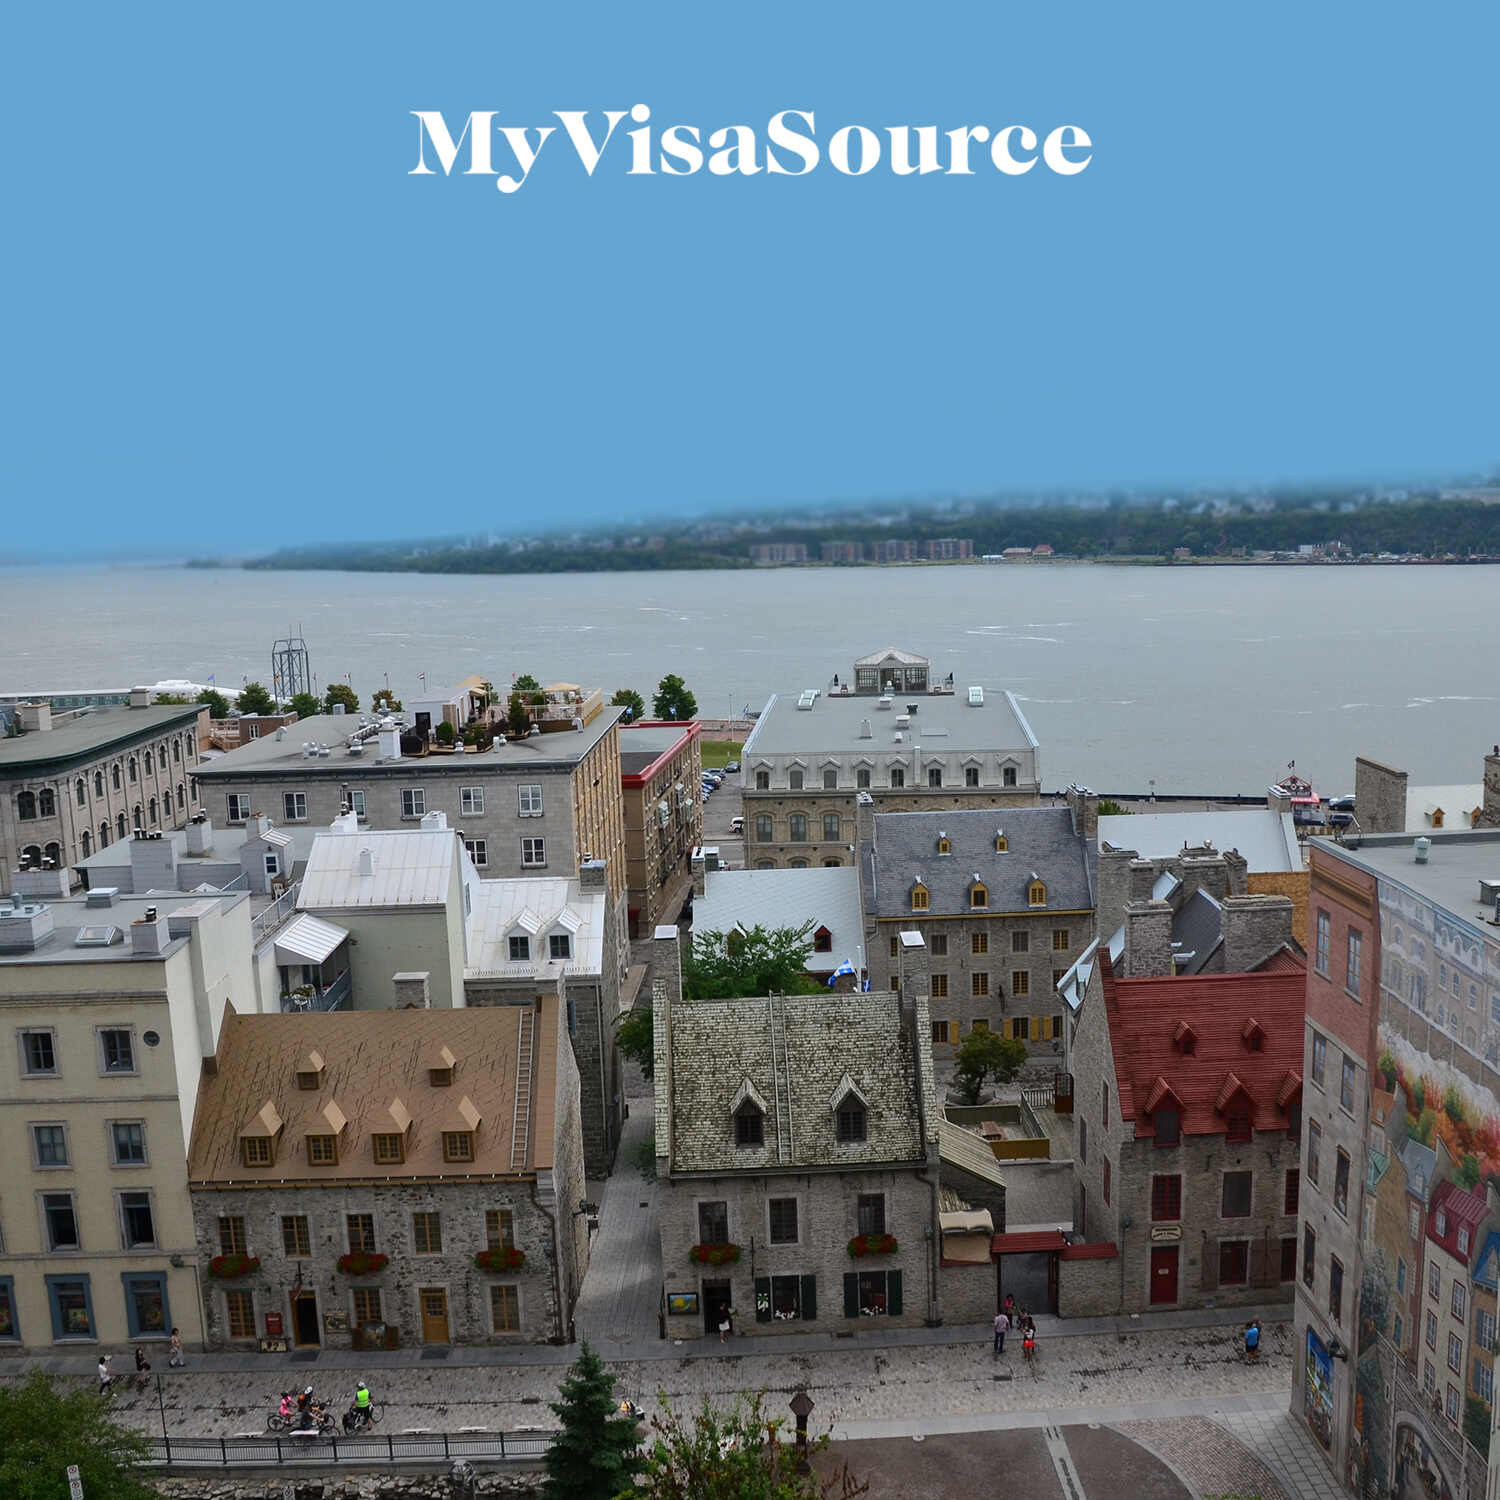 a picture of a small town from high in the air my visa source